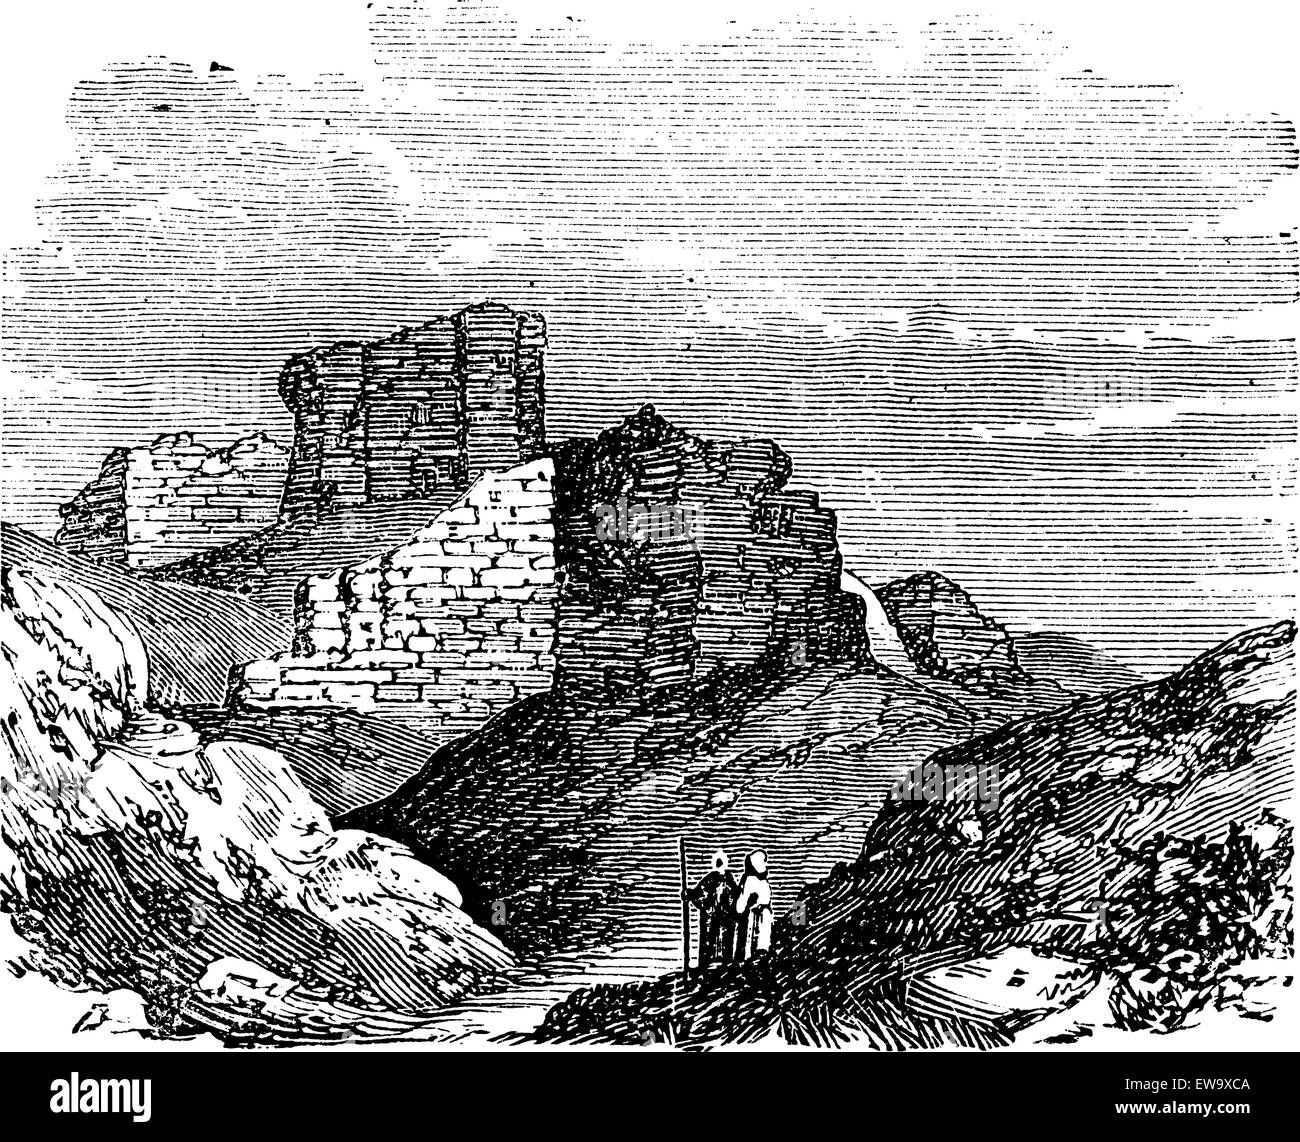 Ruins of the Main Palace in Babylonia in Babil, Iraq, during the 1890s, vintage engraving. Old engraved illustration - Stock Image